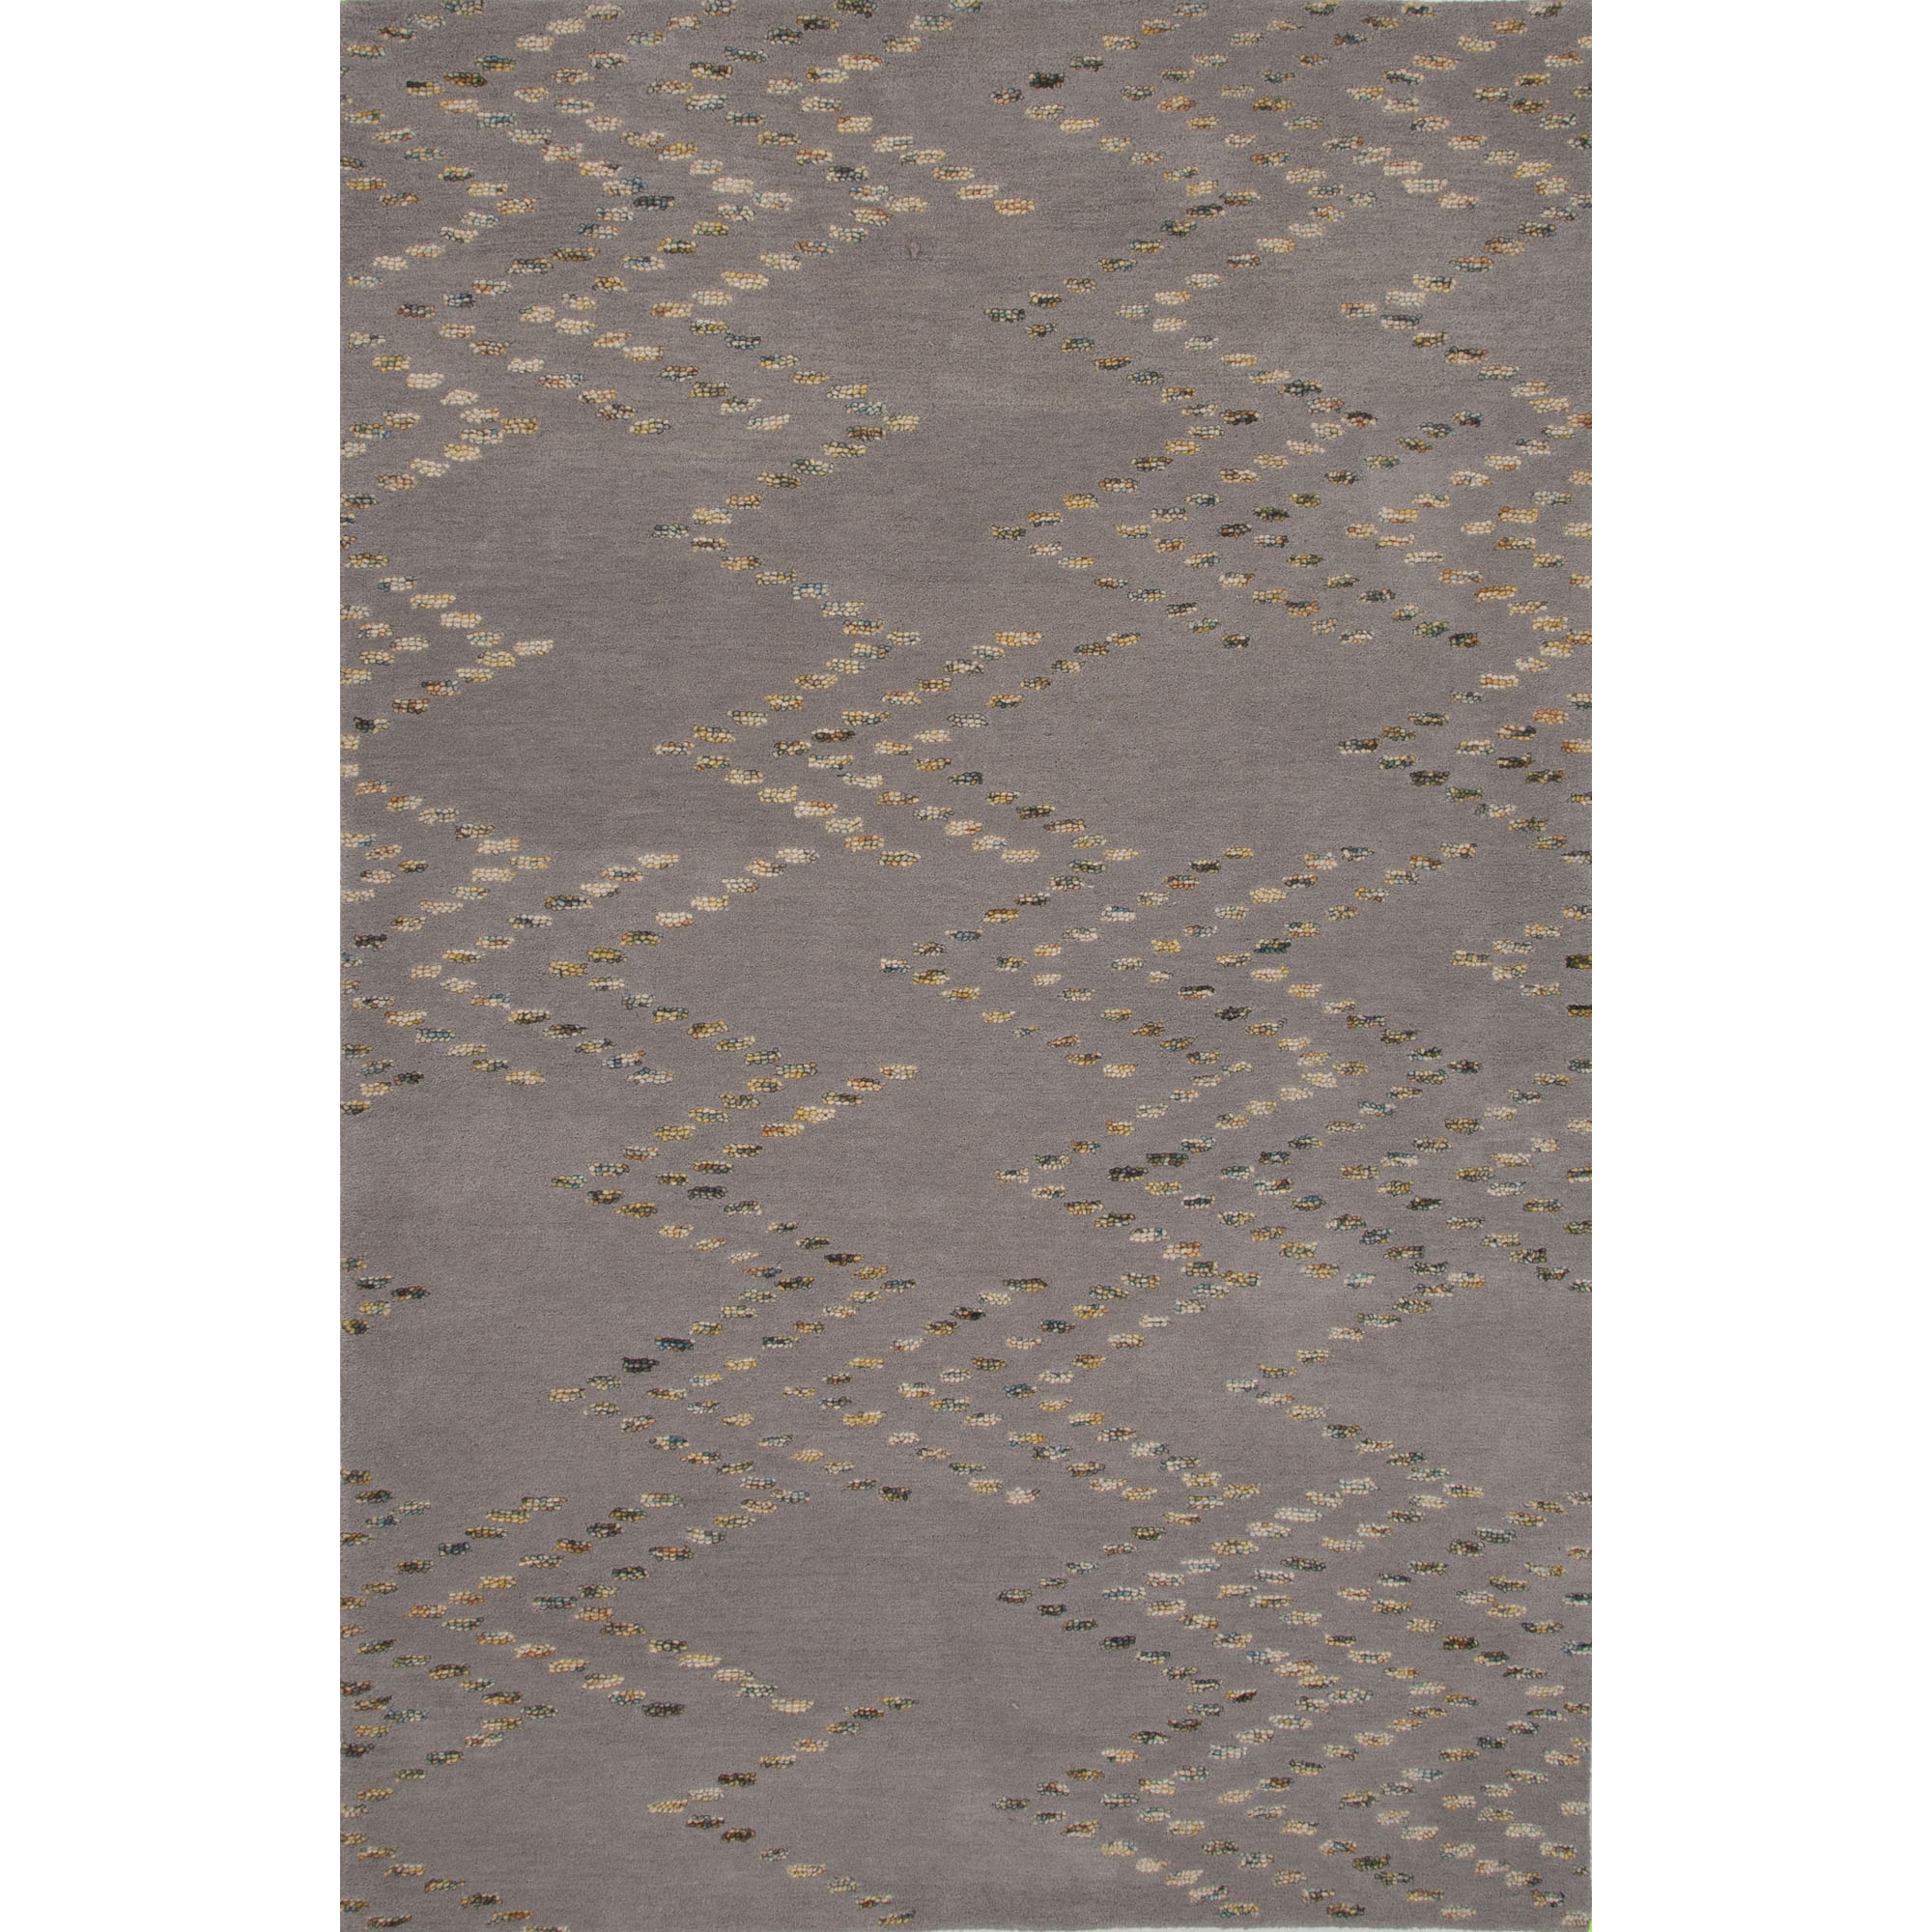 JAIPUR Rugs Traditions Made Modern Tufted 2 x 3 Rug - Item Number: RUG122216